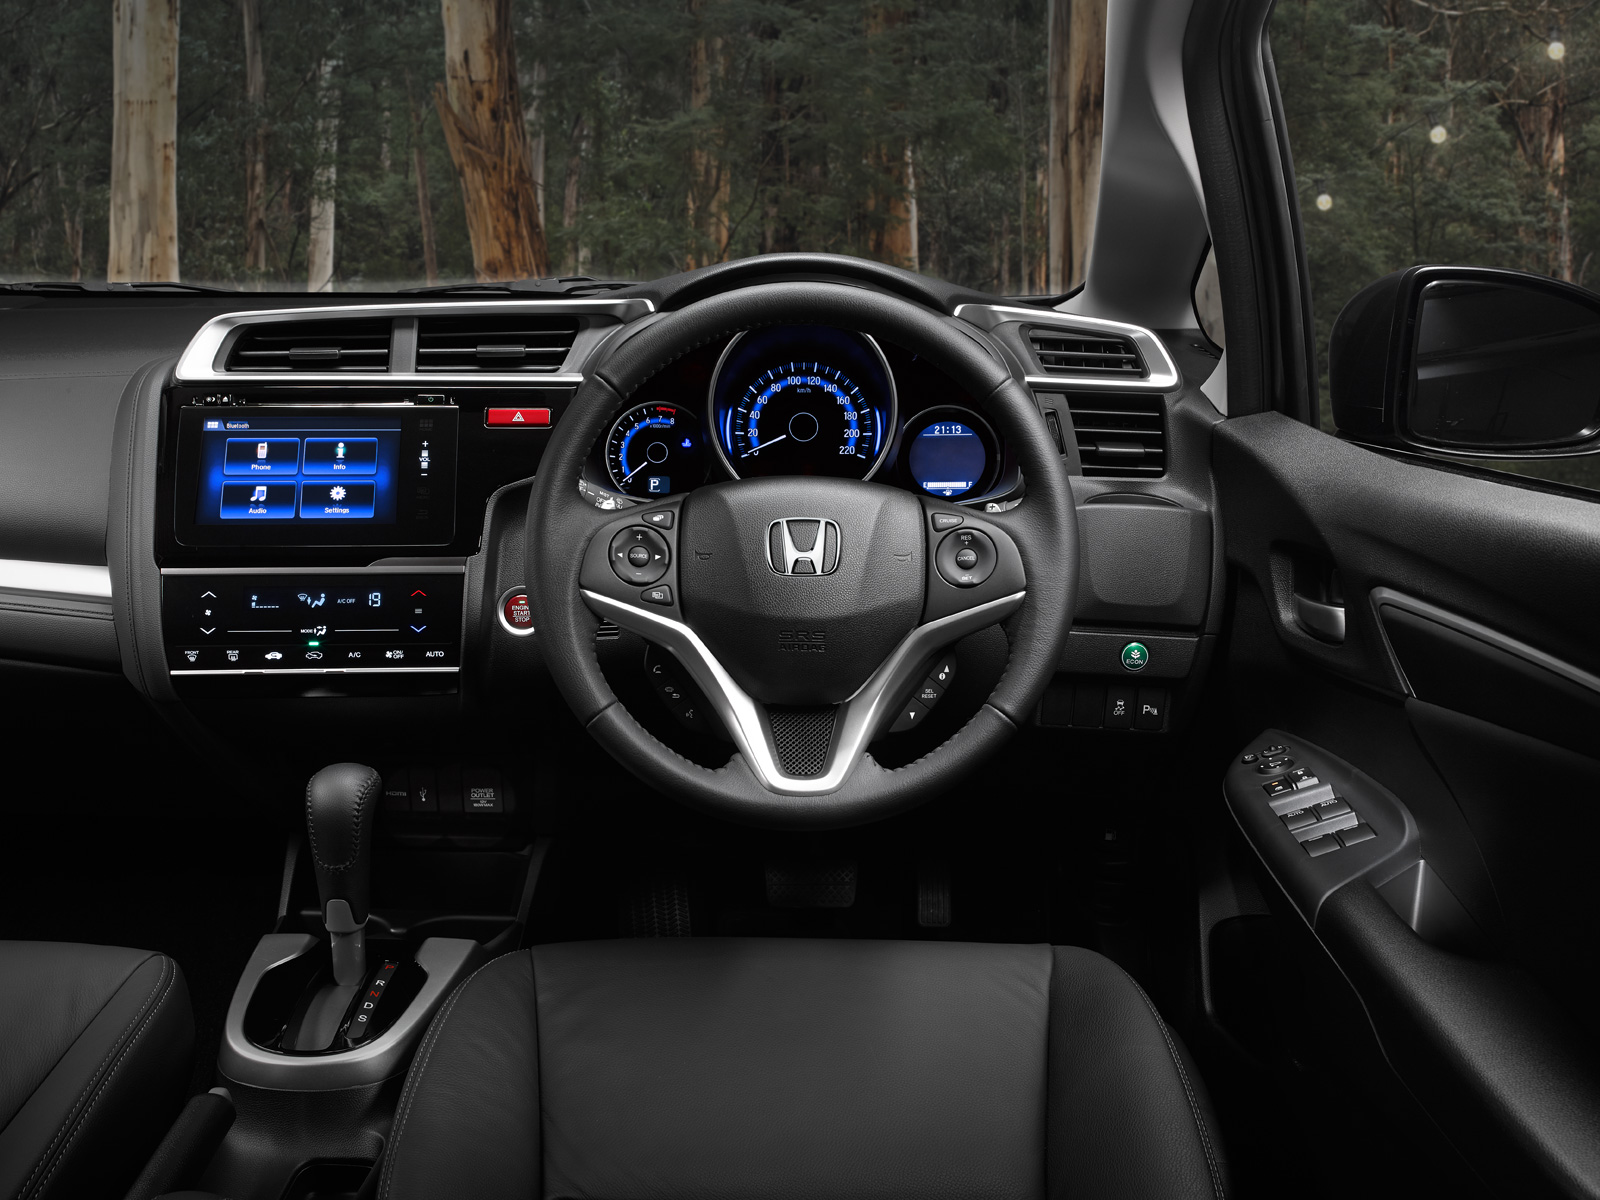 The Jazz's dash and the rest of the interior design works together seamlessly putting everything within your eyeline and at easy reach at all times.